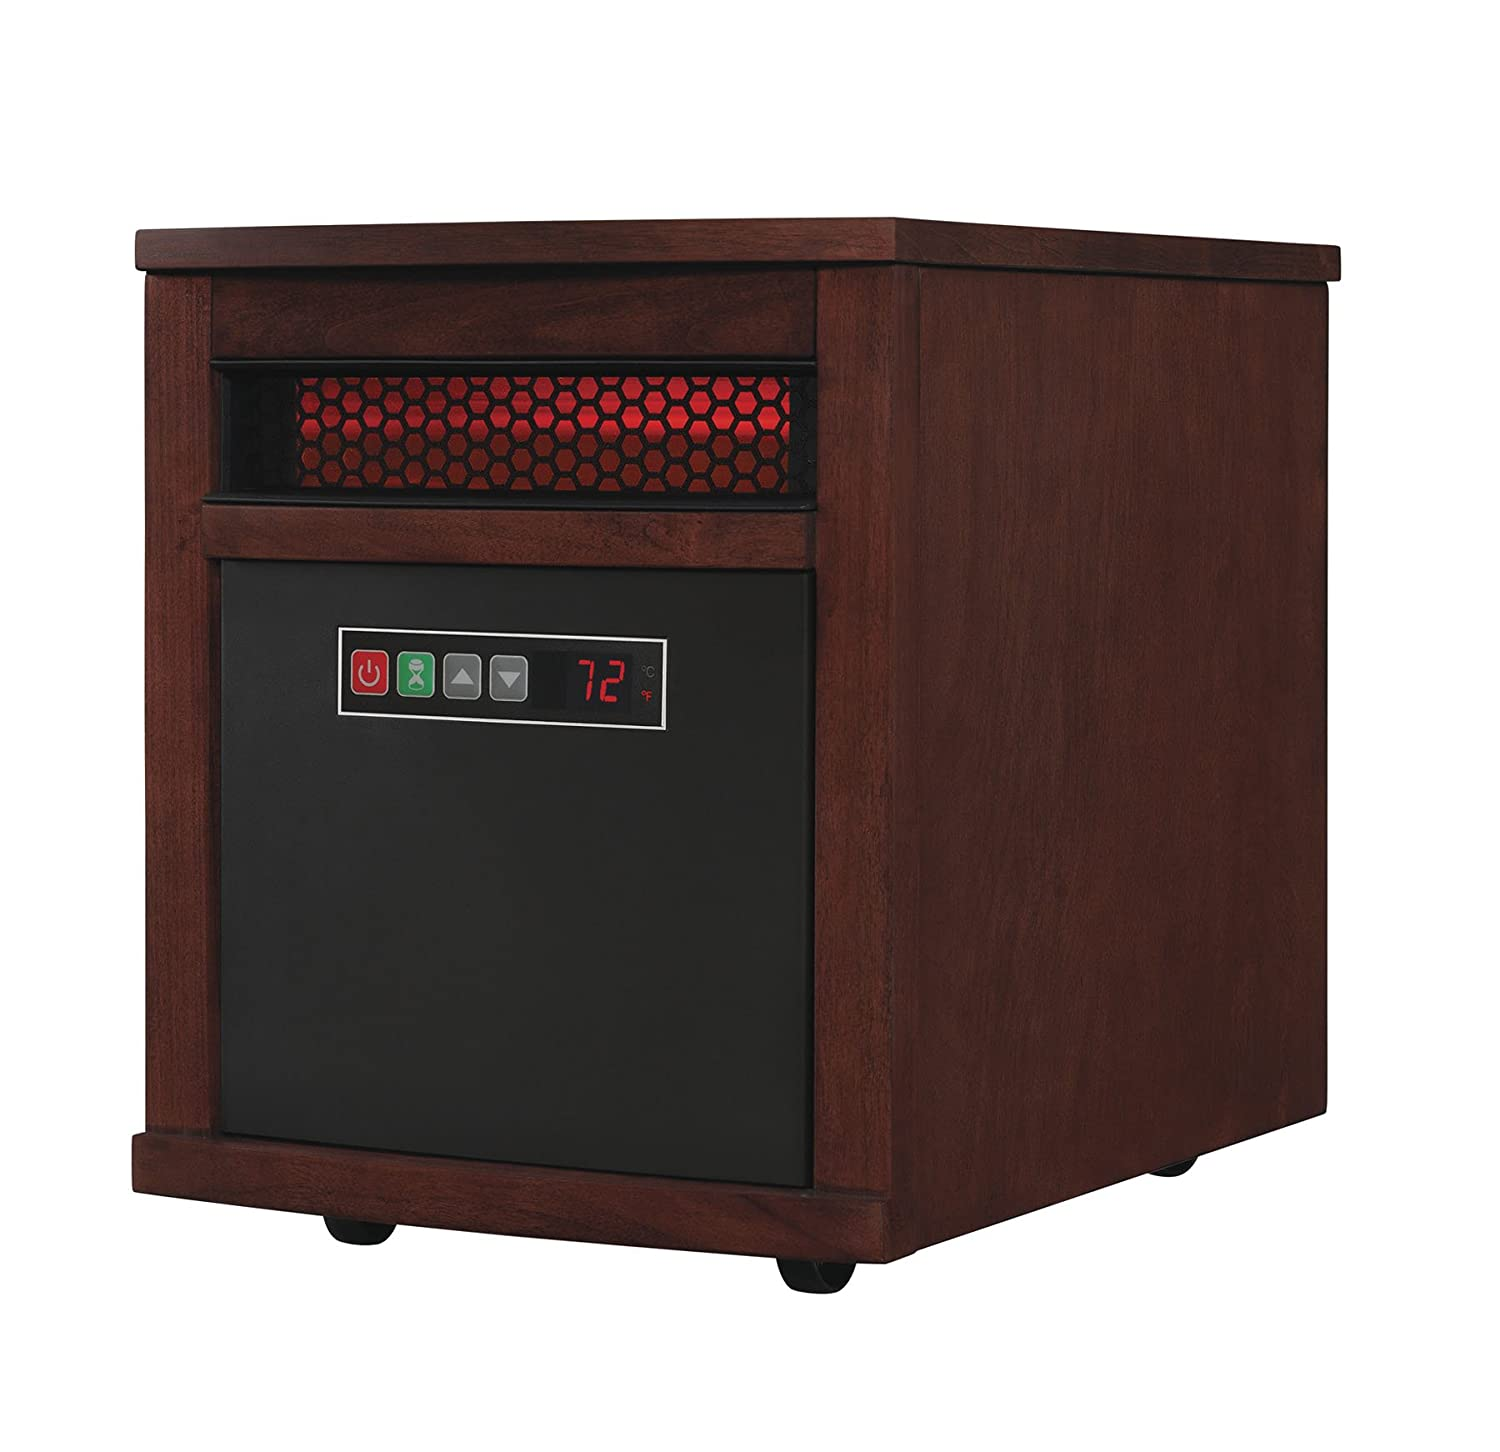 Quartz Infrared Portable Space Heater in Cherry